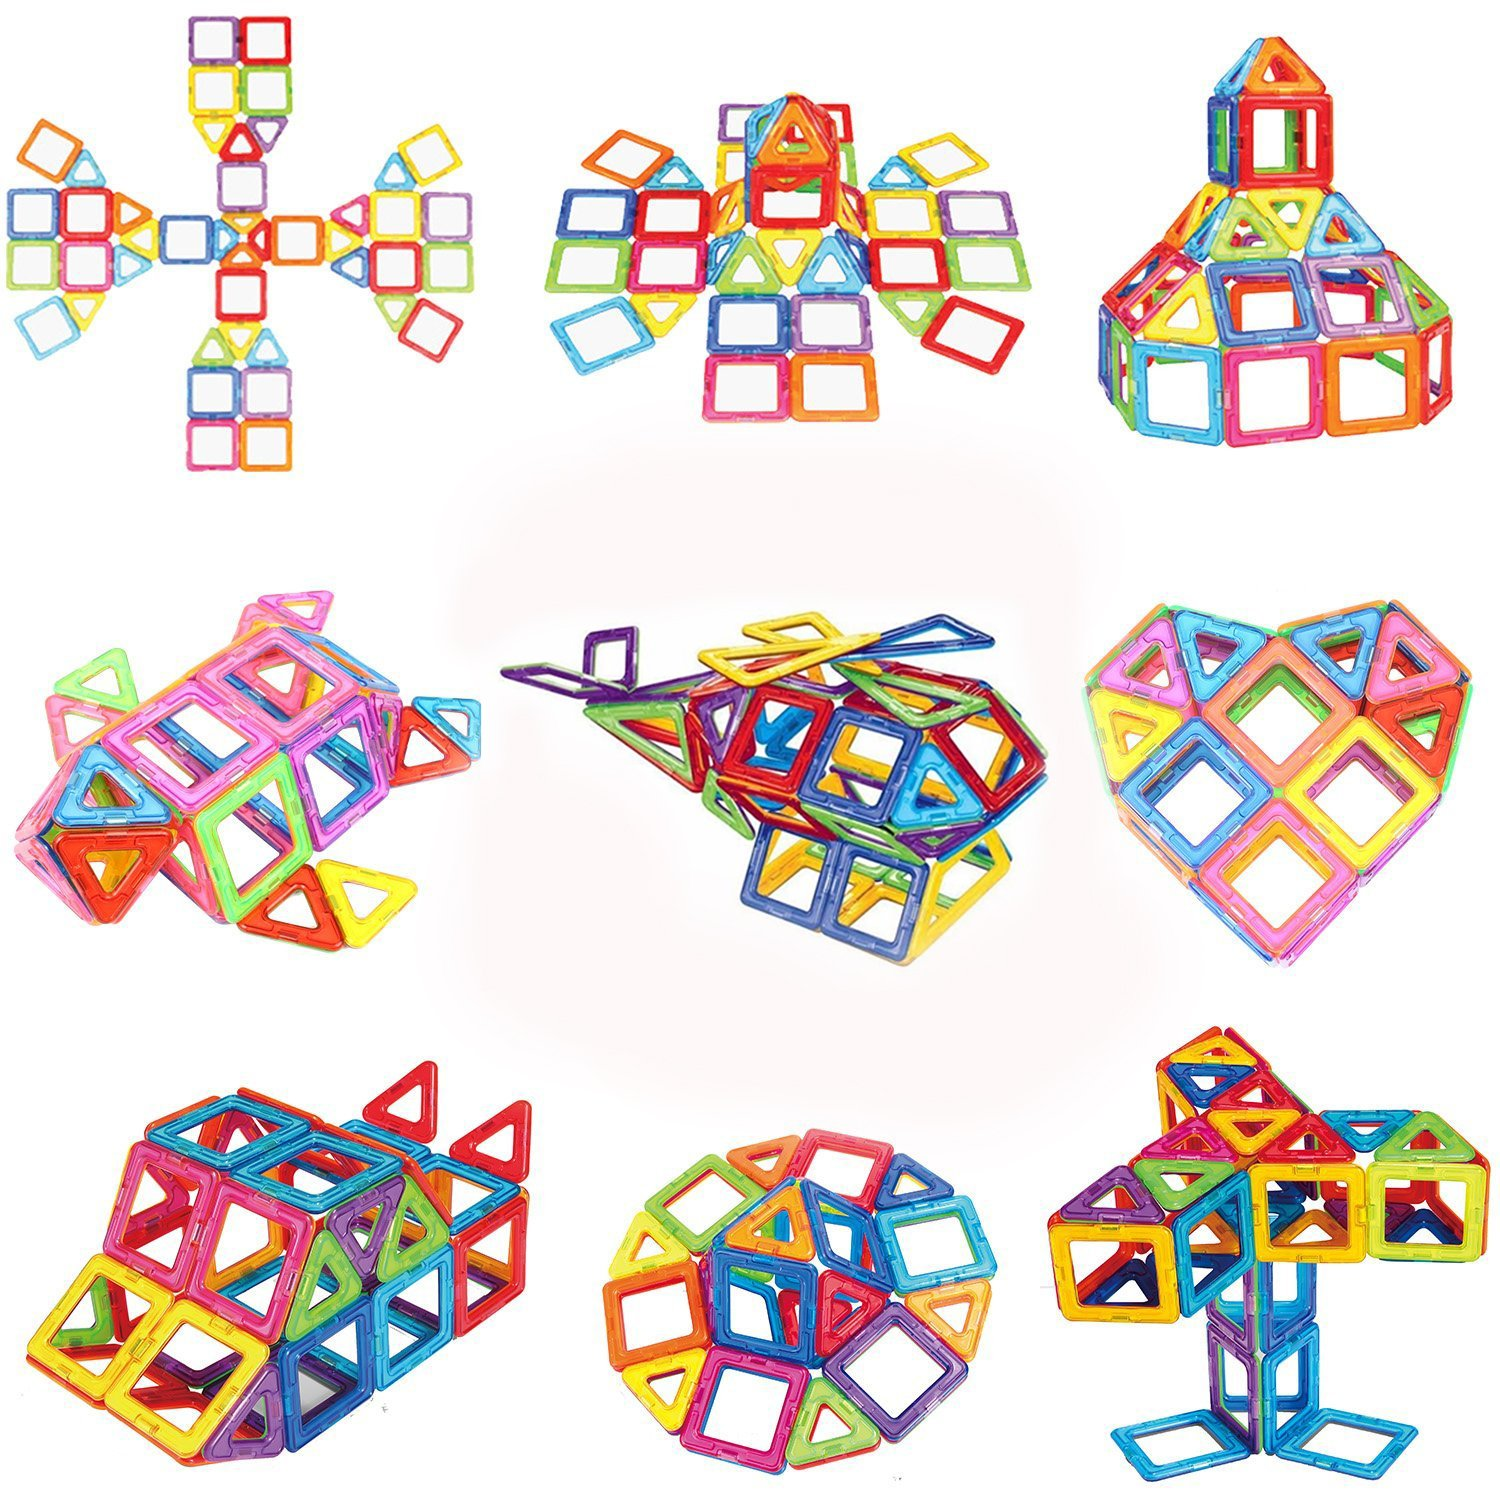 100 Piece Magnetic Blocks Building Toys For Boys Girls, Preschool Educational Stacking Toy 3D Magnet Building Construction Kit for Kids By Mags Pro Review